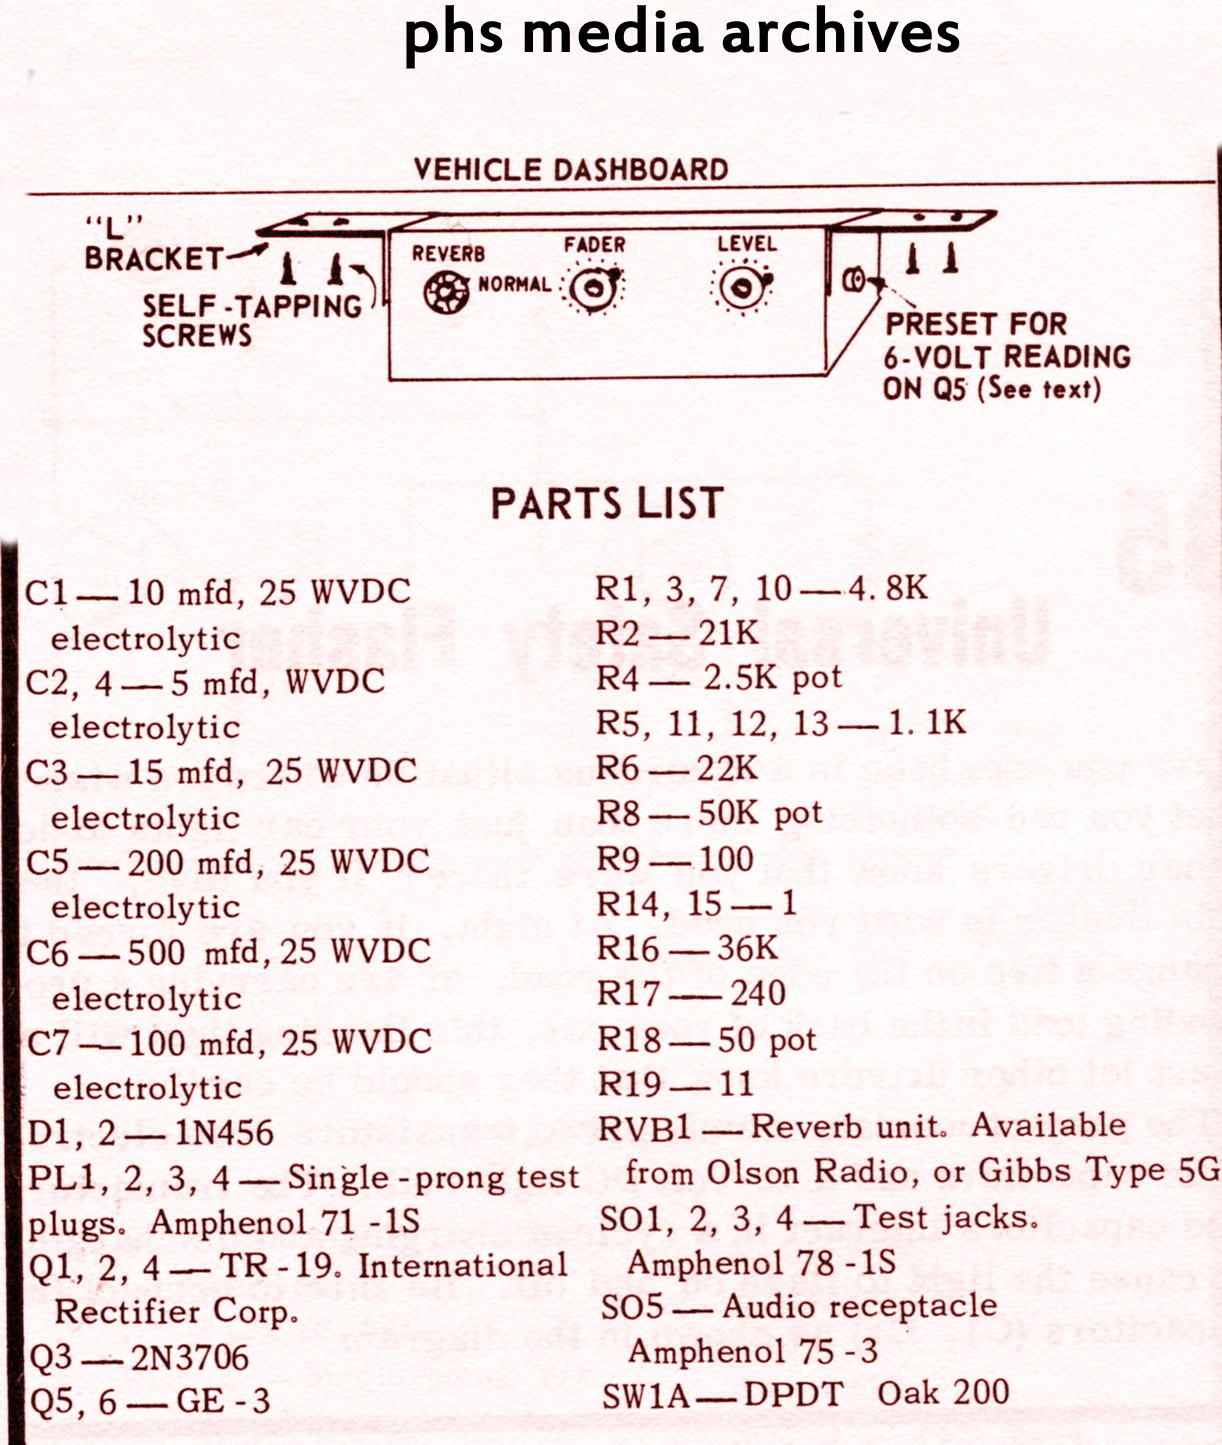 Pontiac Reverb Wiring Diagram Opinions About For 2004 Bonneville Tech Series Make Your Own Reverberator Unit Phscollectorcarworld Rh Blogspot Com 1964